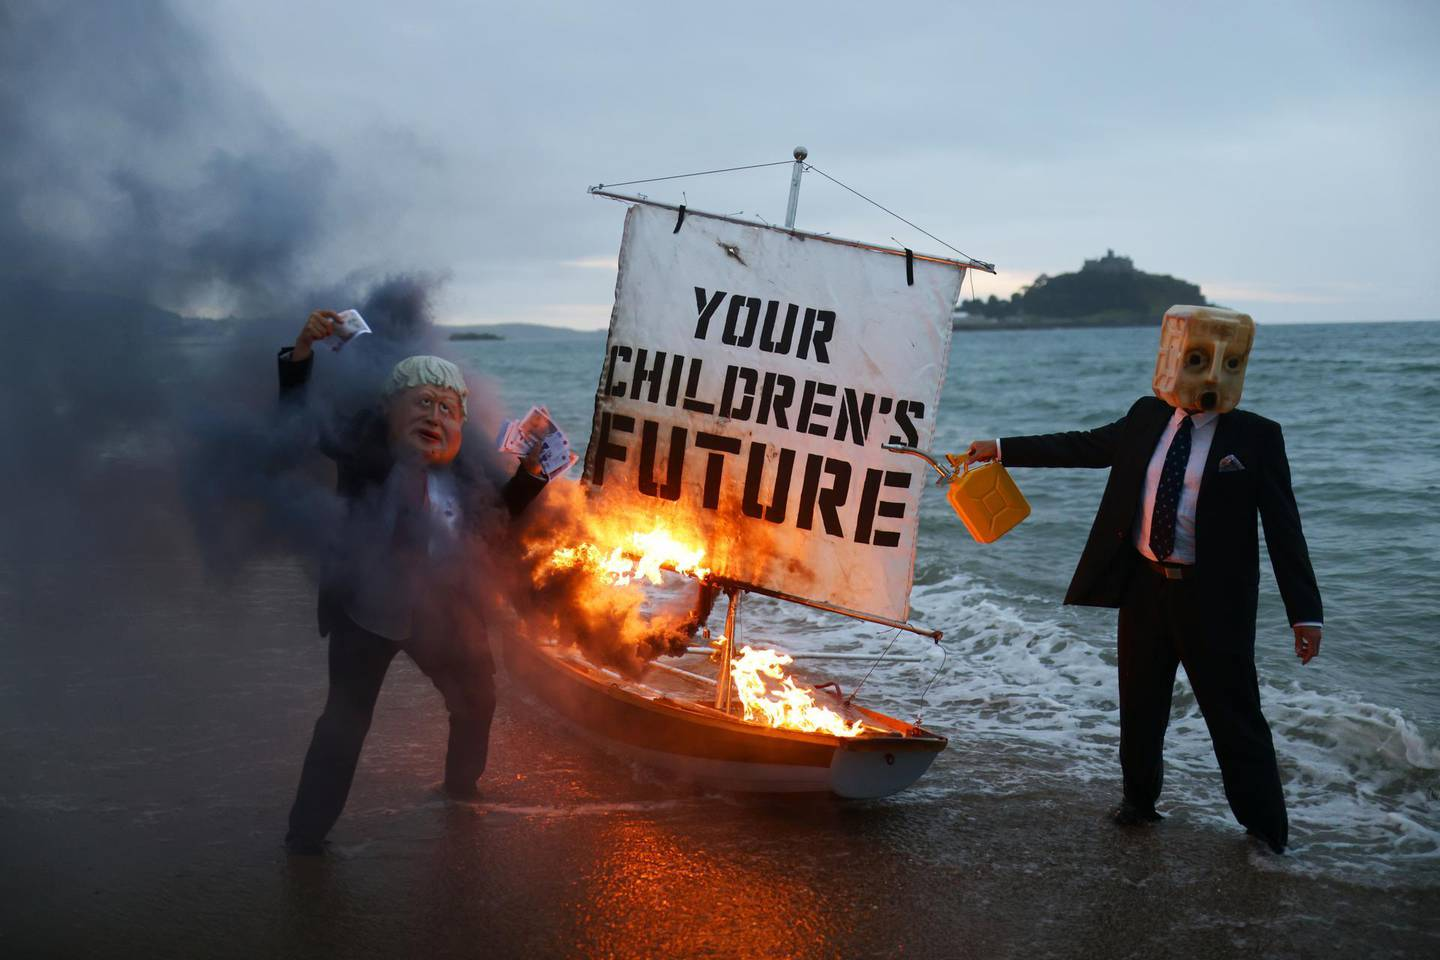 Activists from climate action group Ocean Rebellion set a boat on fire during a demonstration at sunrise at Marazion Beach, Cornwall, Britain, June 5, 2021, ahead of the G7 summit in Carbis Bay, Cornwall. REUTERS/Tom Nicholson